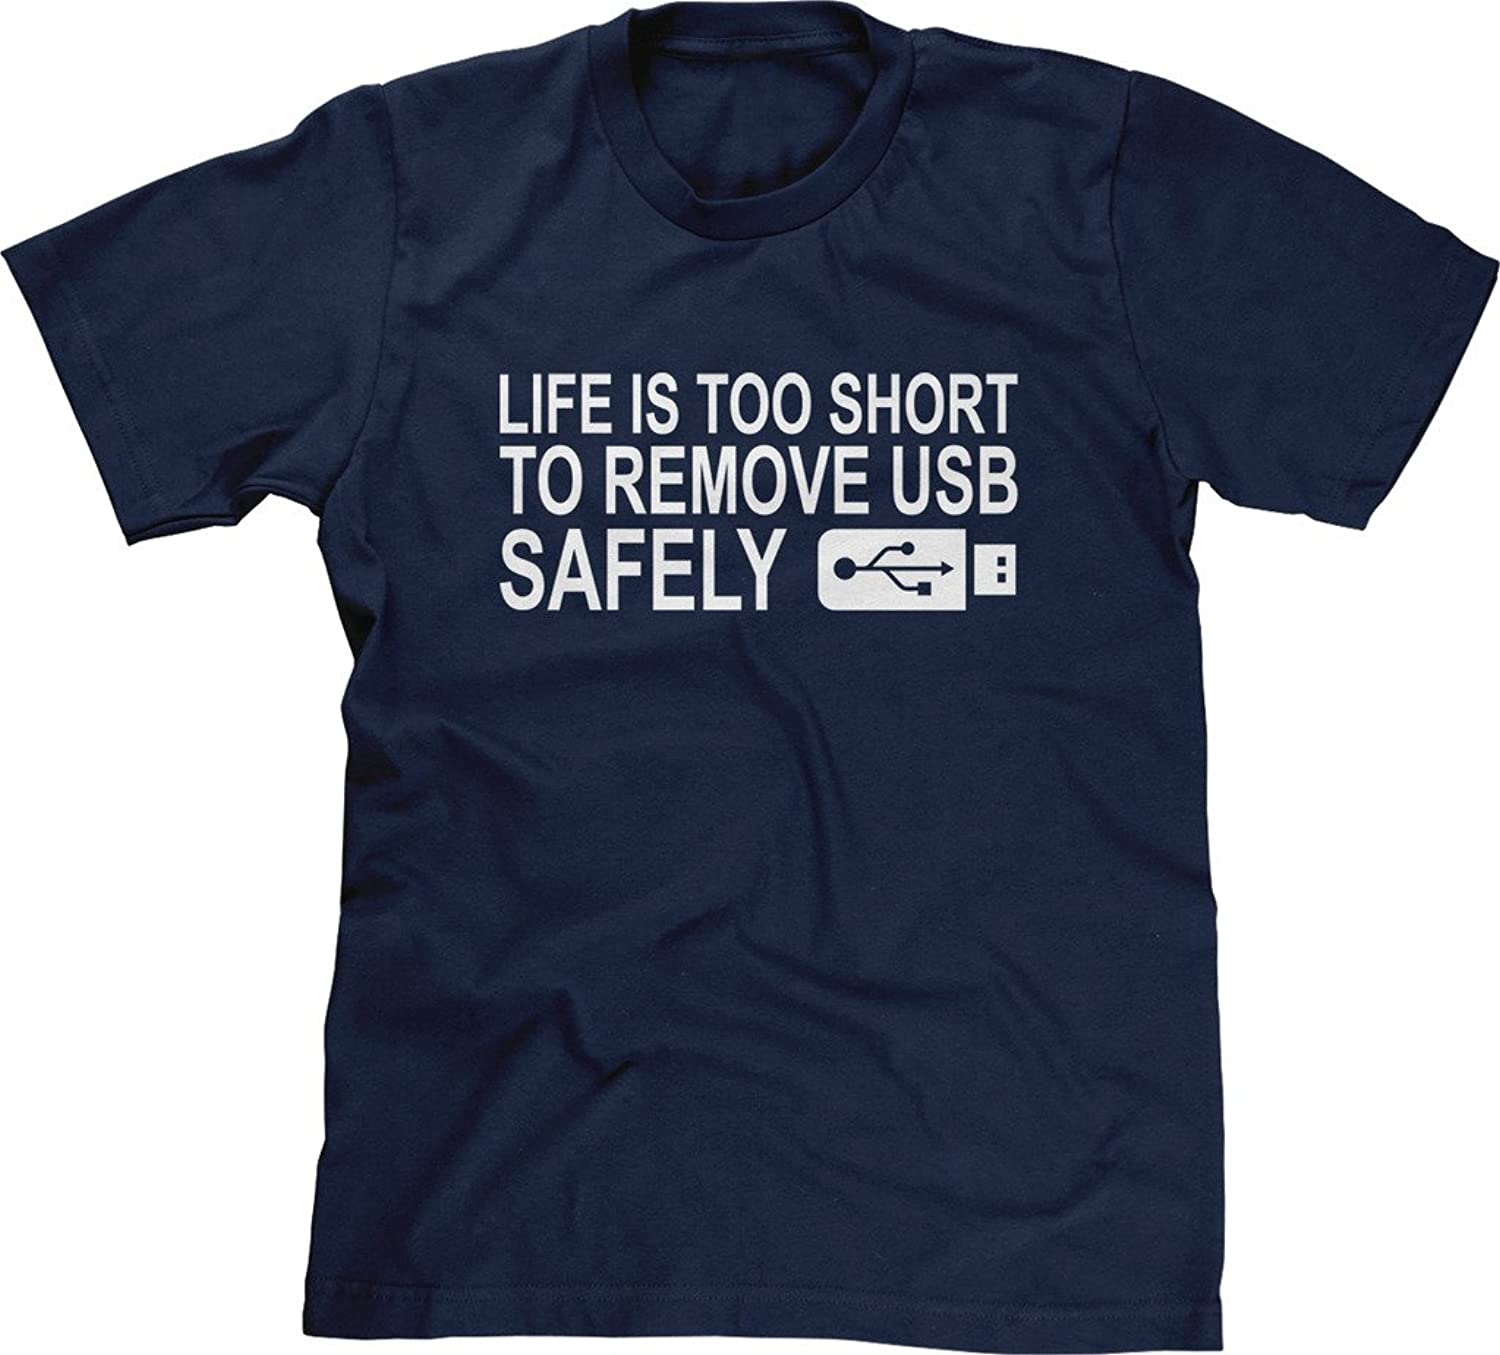 Blittzen Mens T-shirt Life Is Too Short To Remove USB Safely